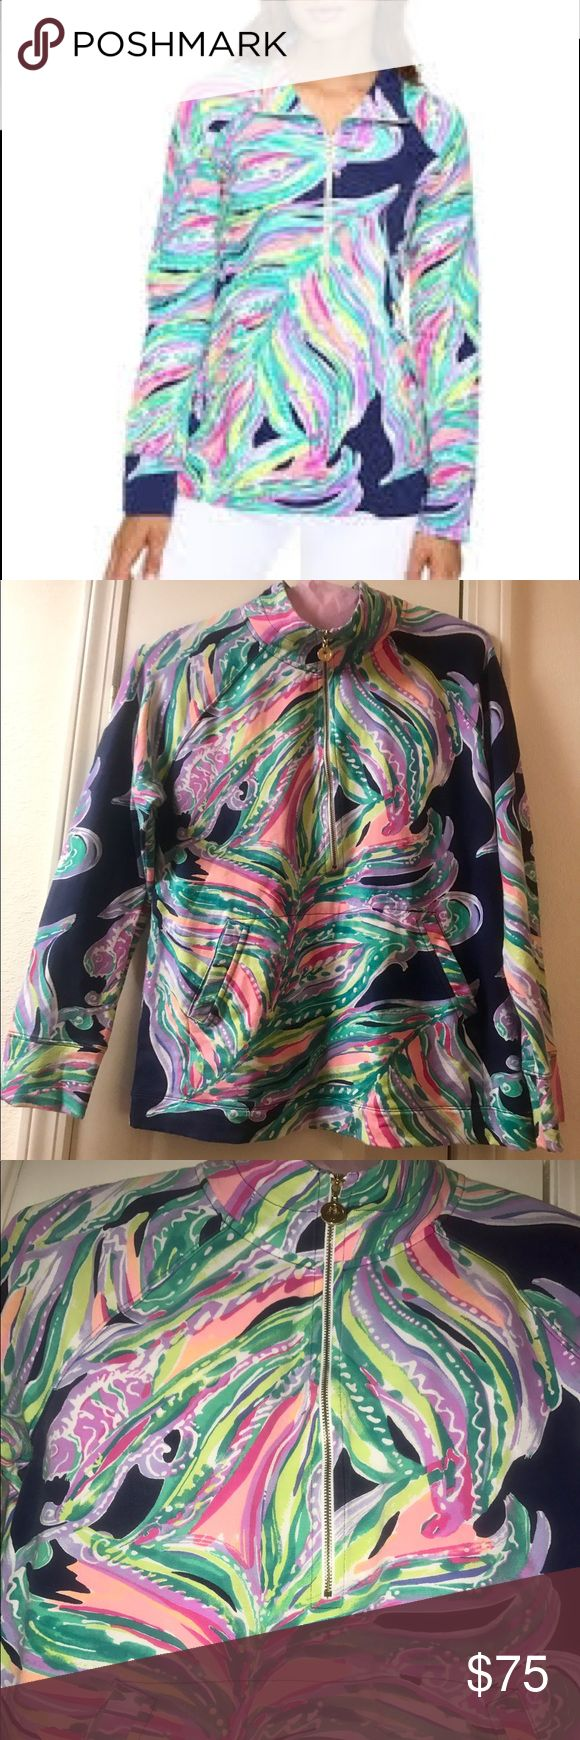 Lilly Pulitzer Popover, Don't Leave Me Hanging Lilly Pulitzer Women's Skipper Popover, Bright Navy Don't Leave Me Hanging worn 3 times no stains rips or marks dry cleaned each time Lilly Pulitzer Jackets & Coats